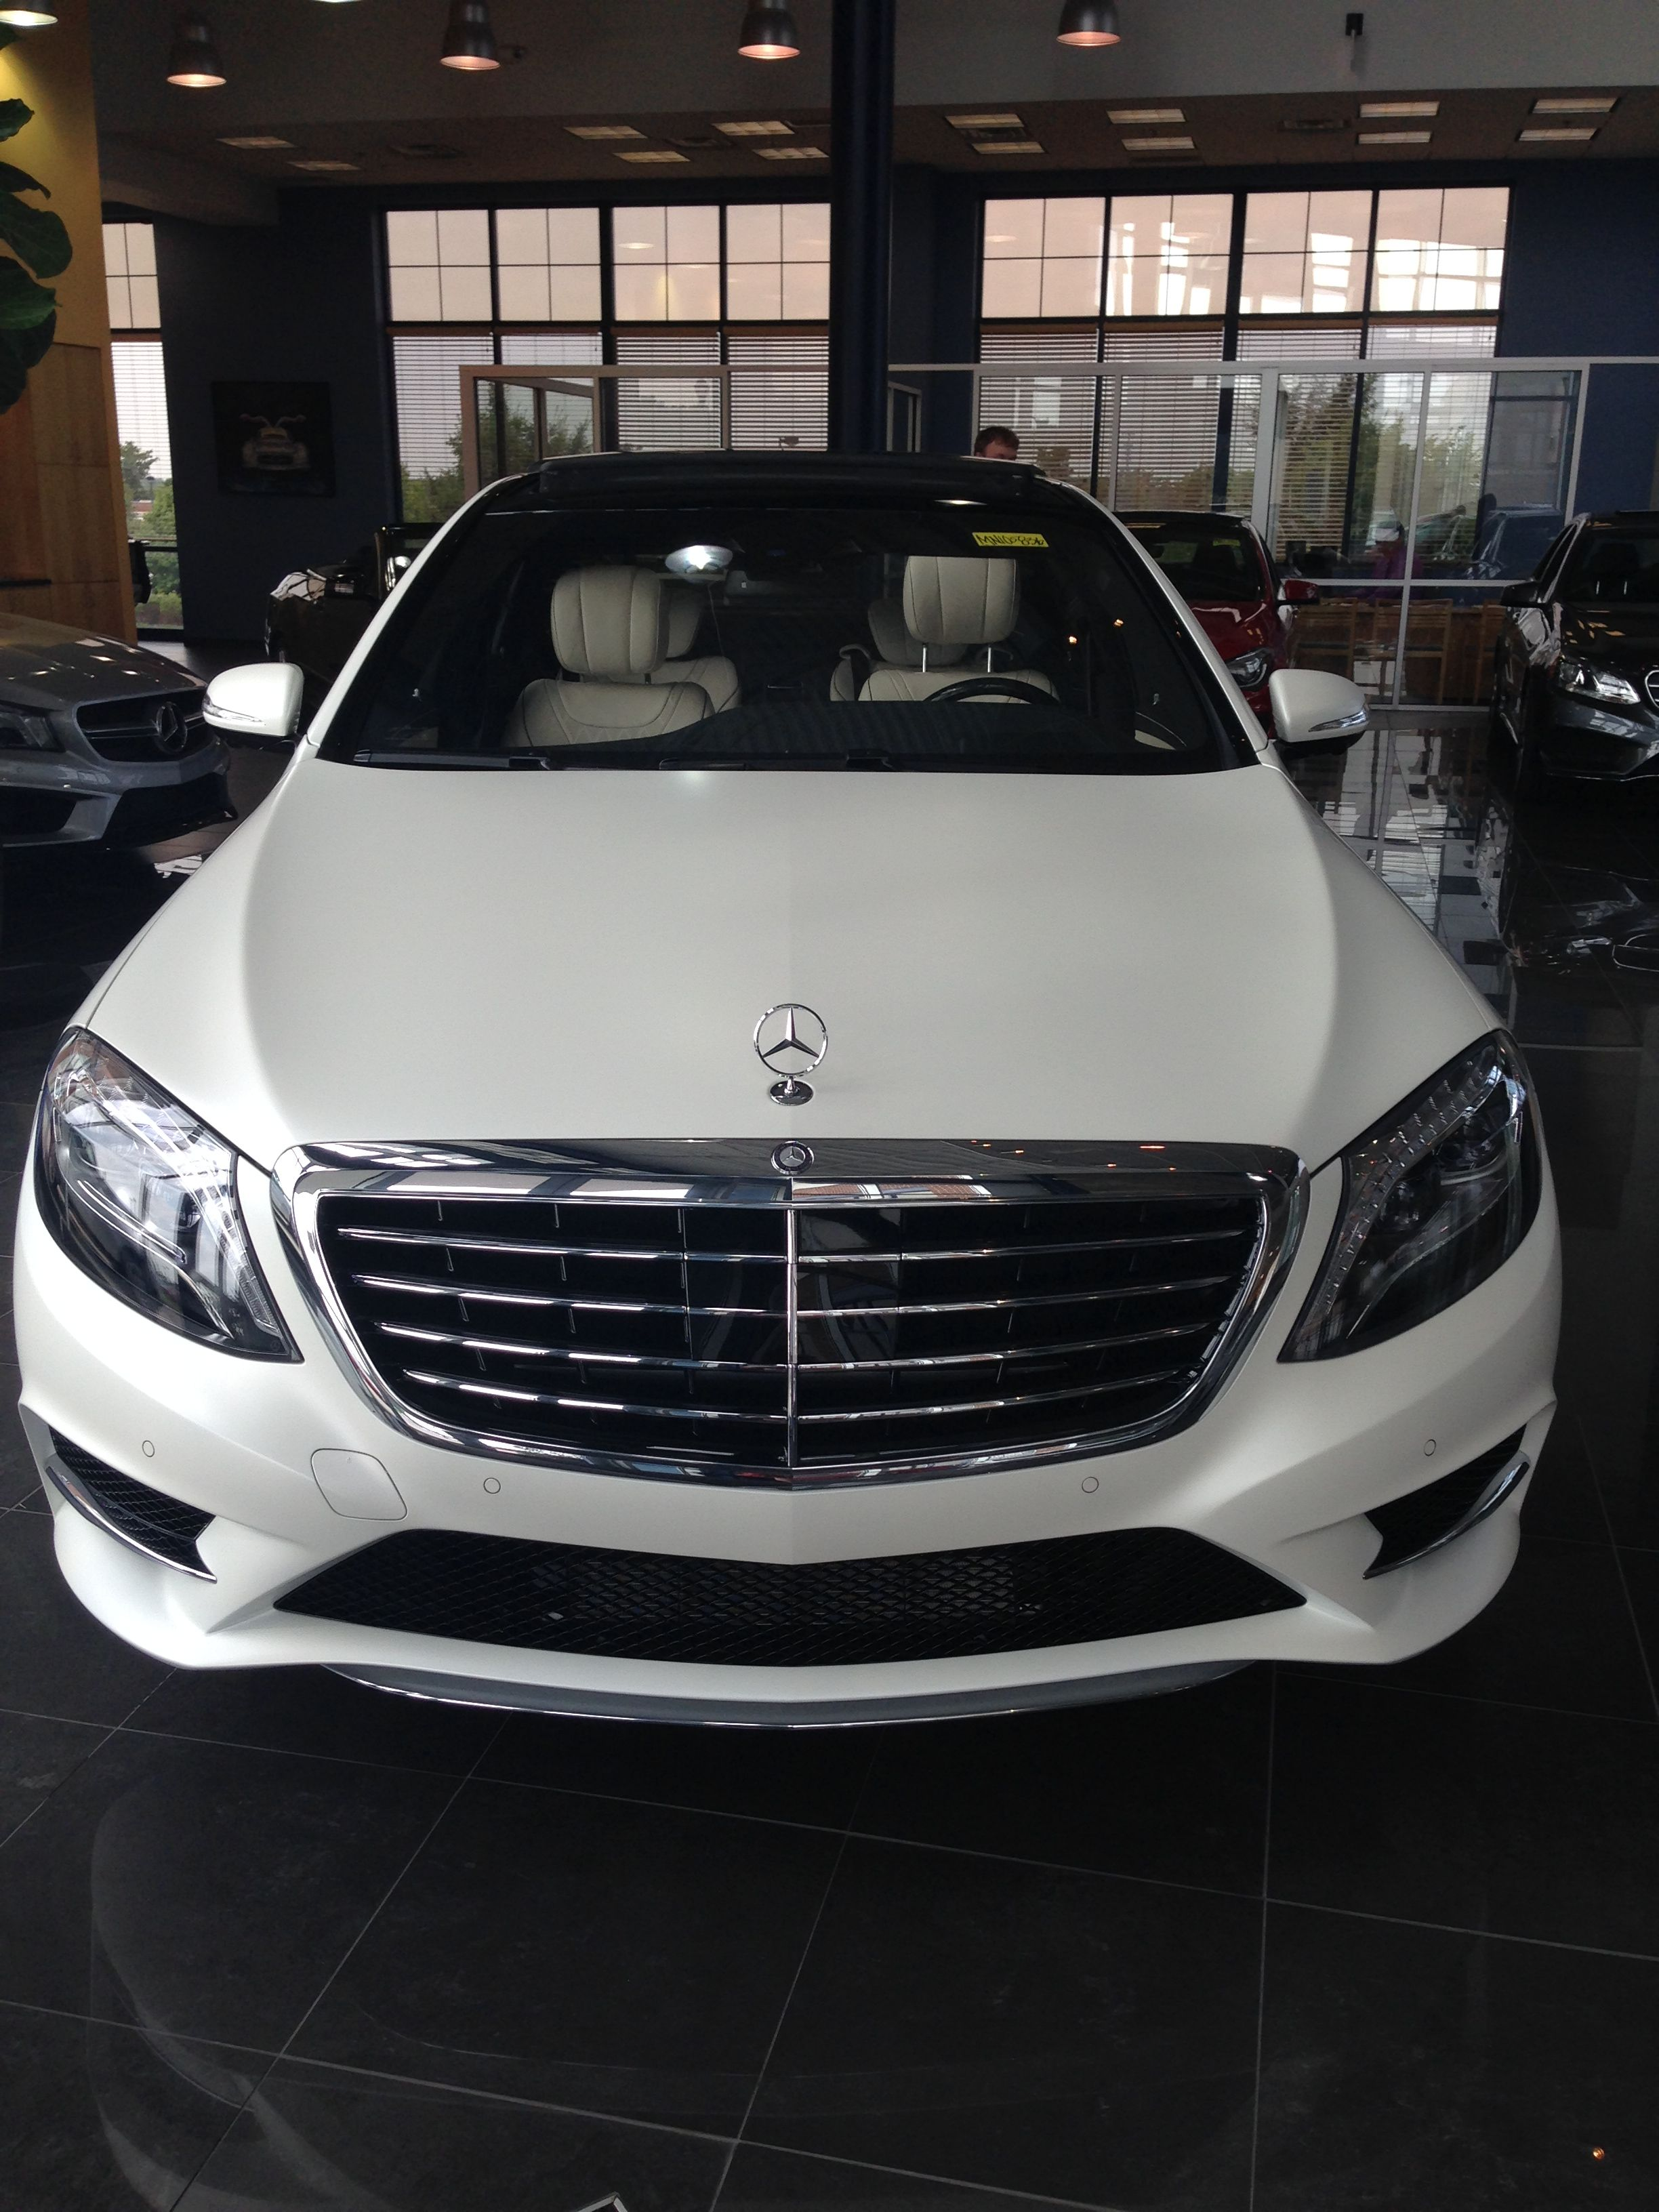 merc corey mercedes benz cars